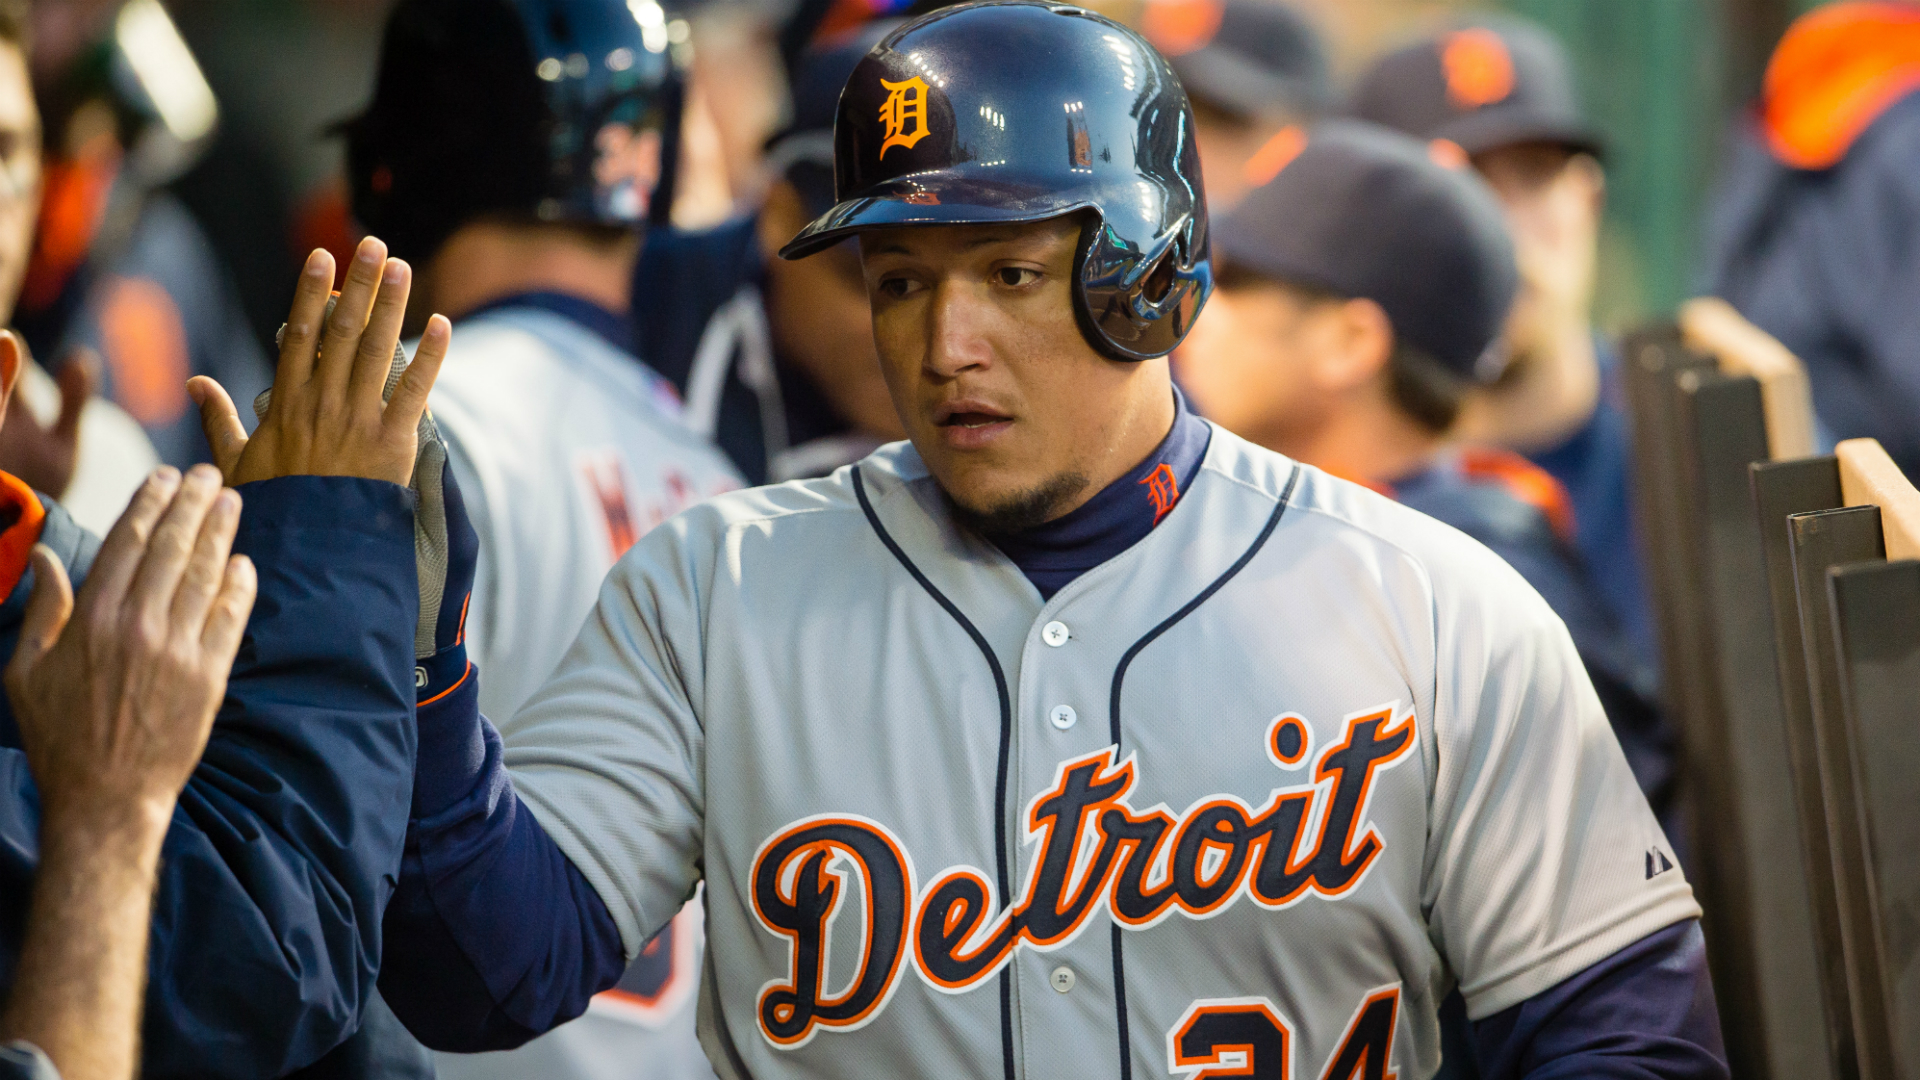 Miguelcabrera-cropped_yaq0xiwsjyvk1gn9t9ifjfv4r